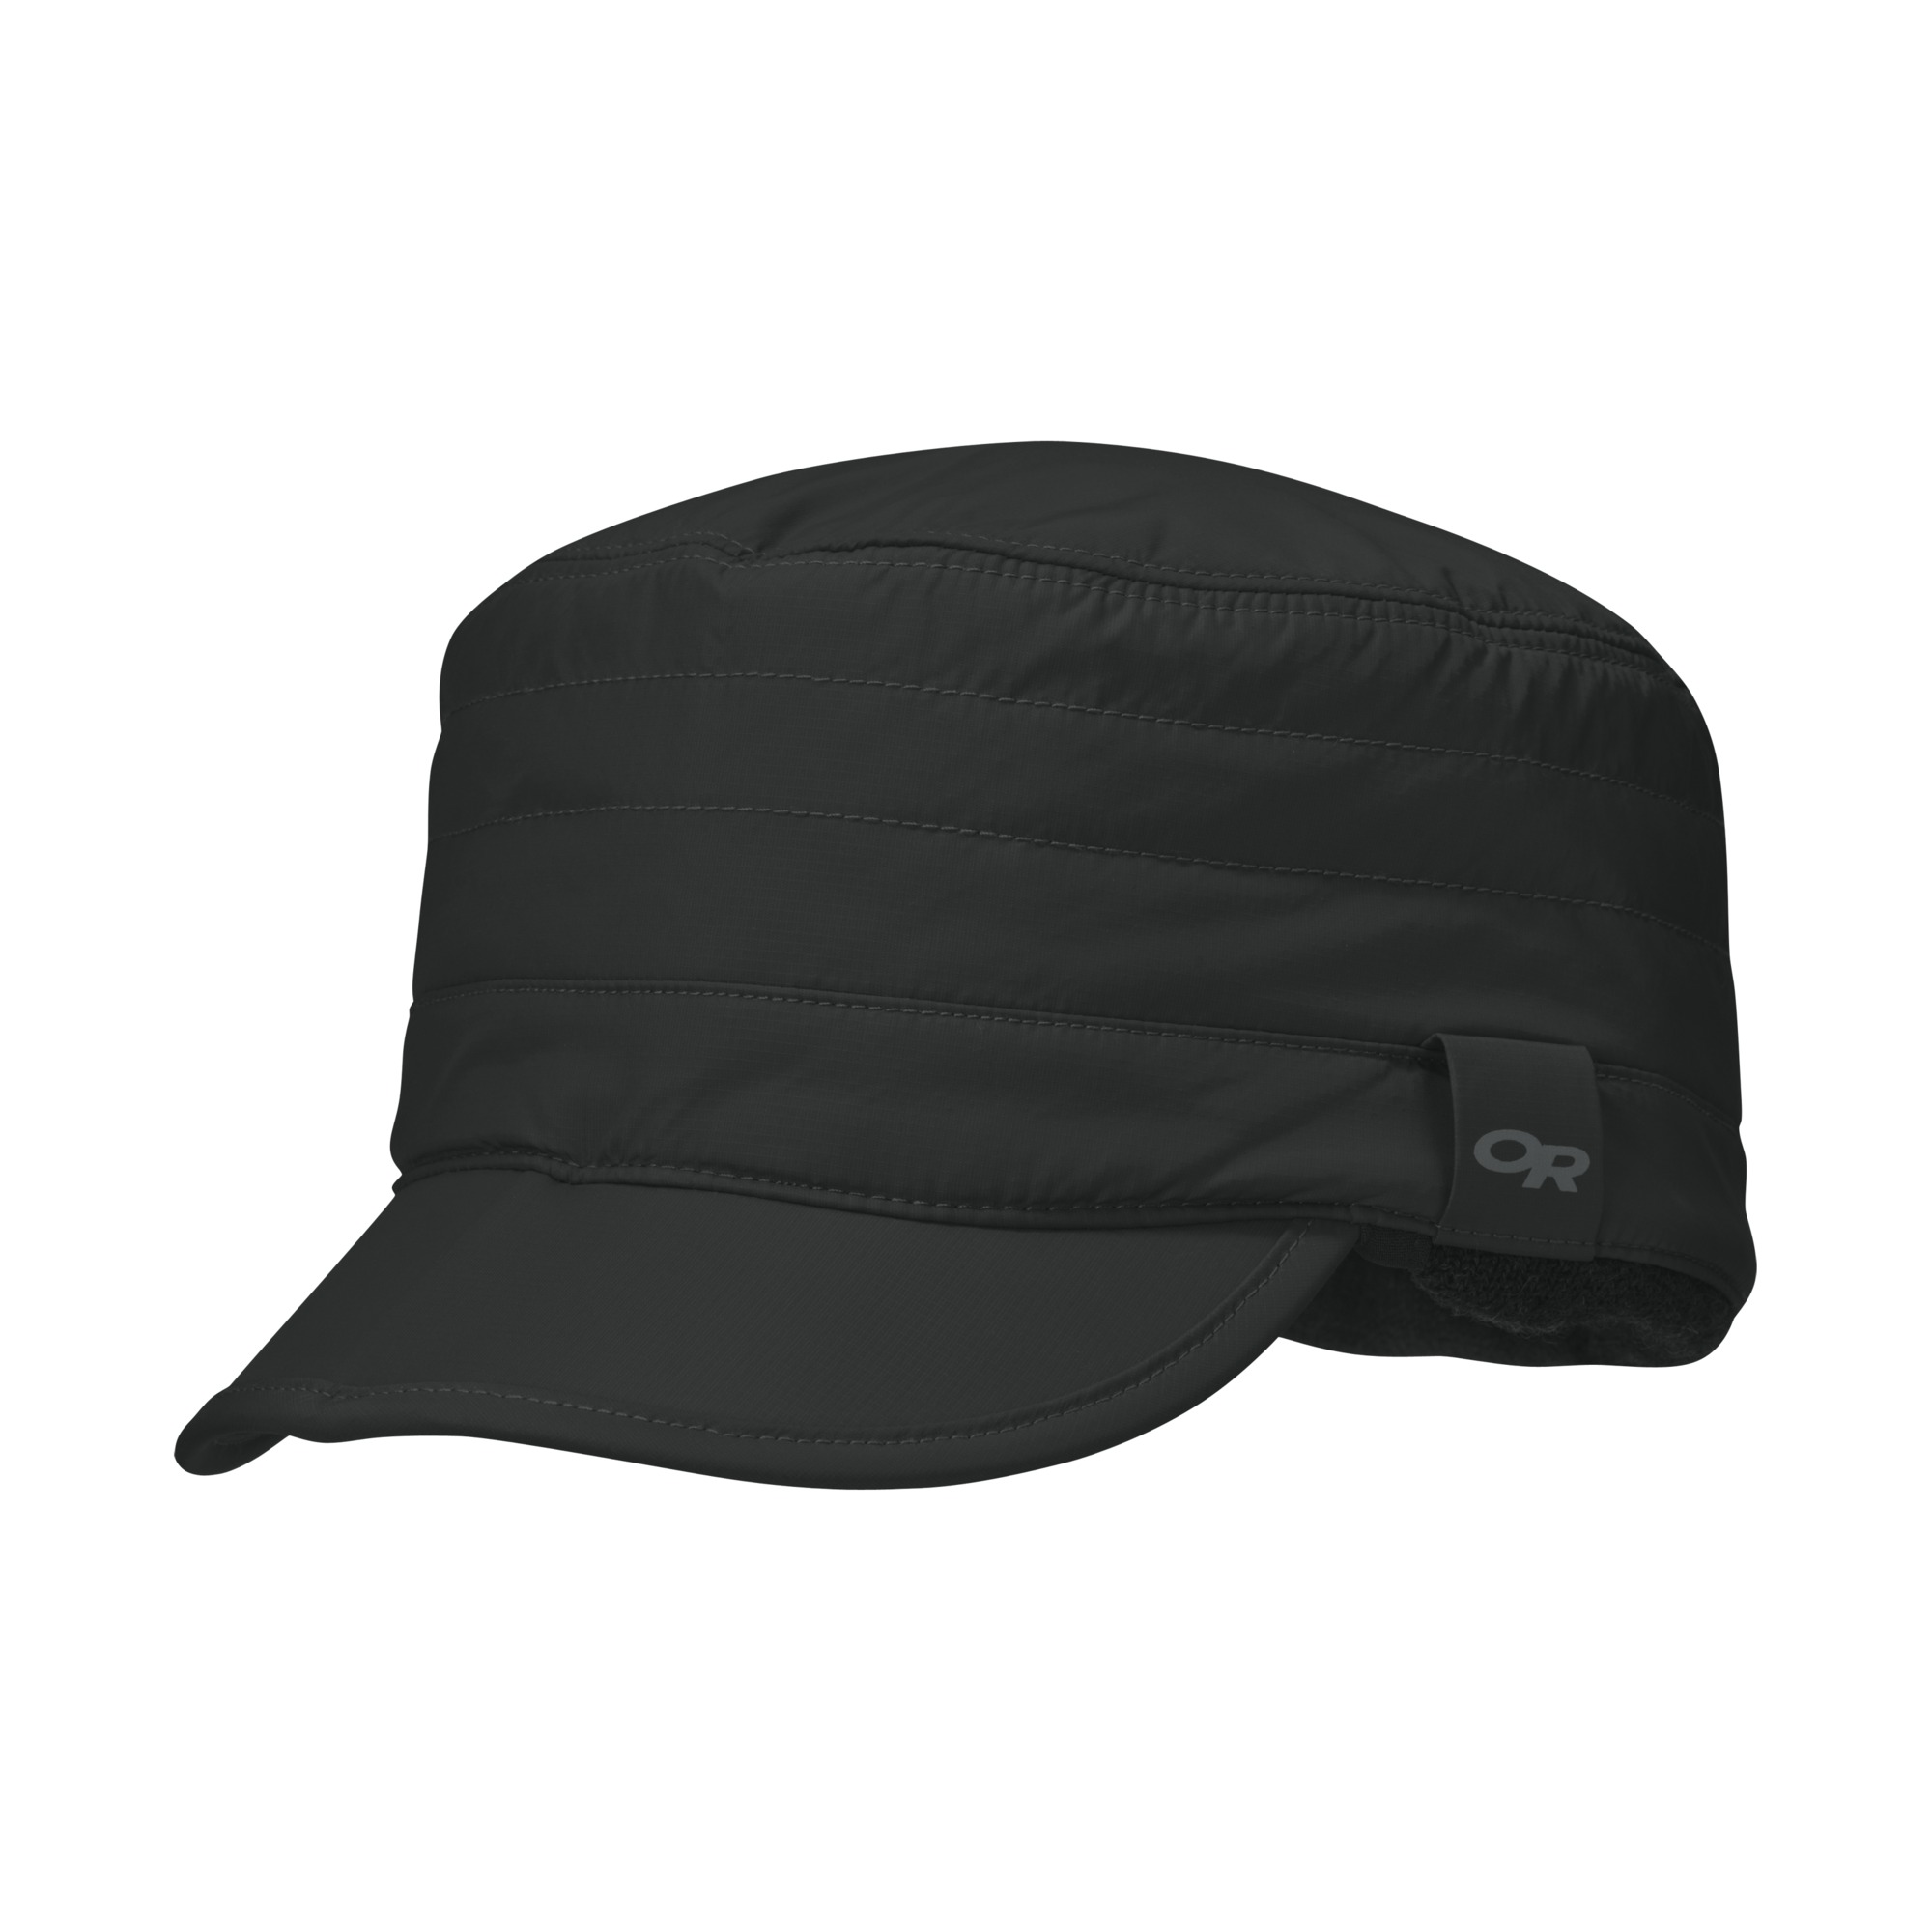 3a0f8613698 Inversion Radar Cap™ - black